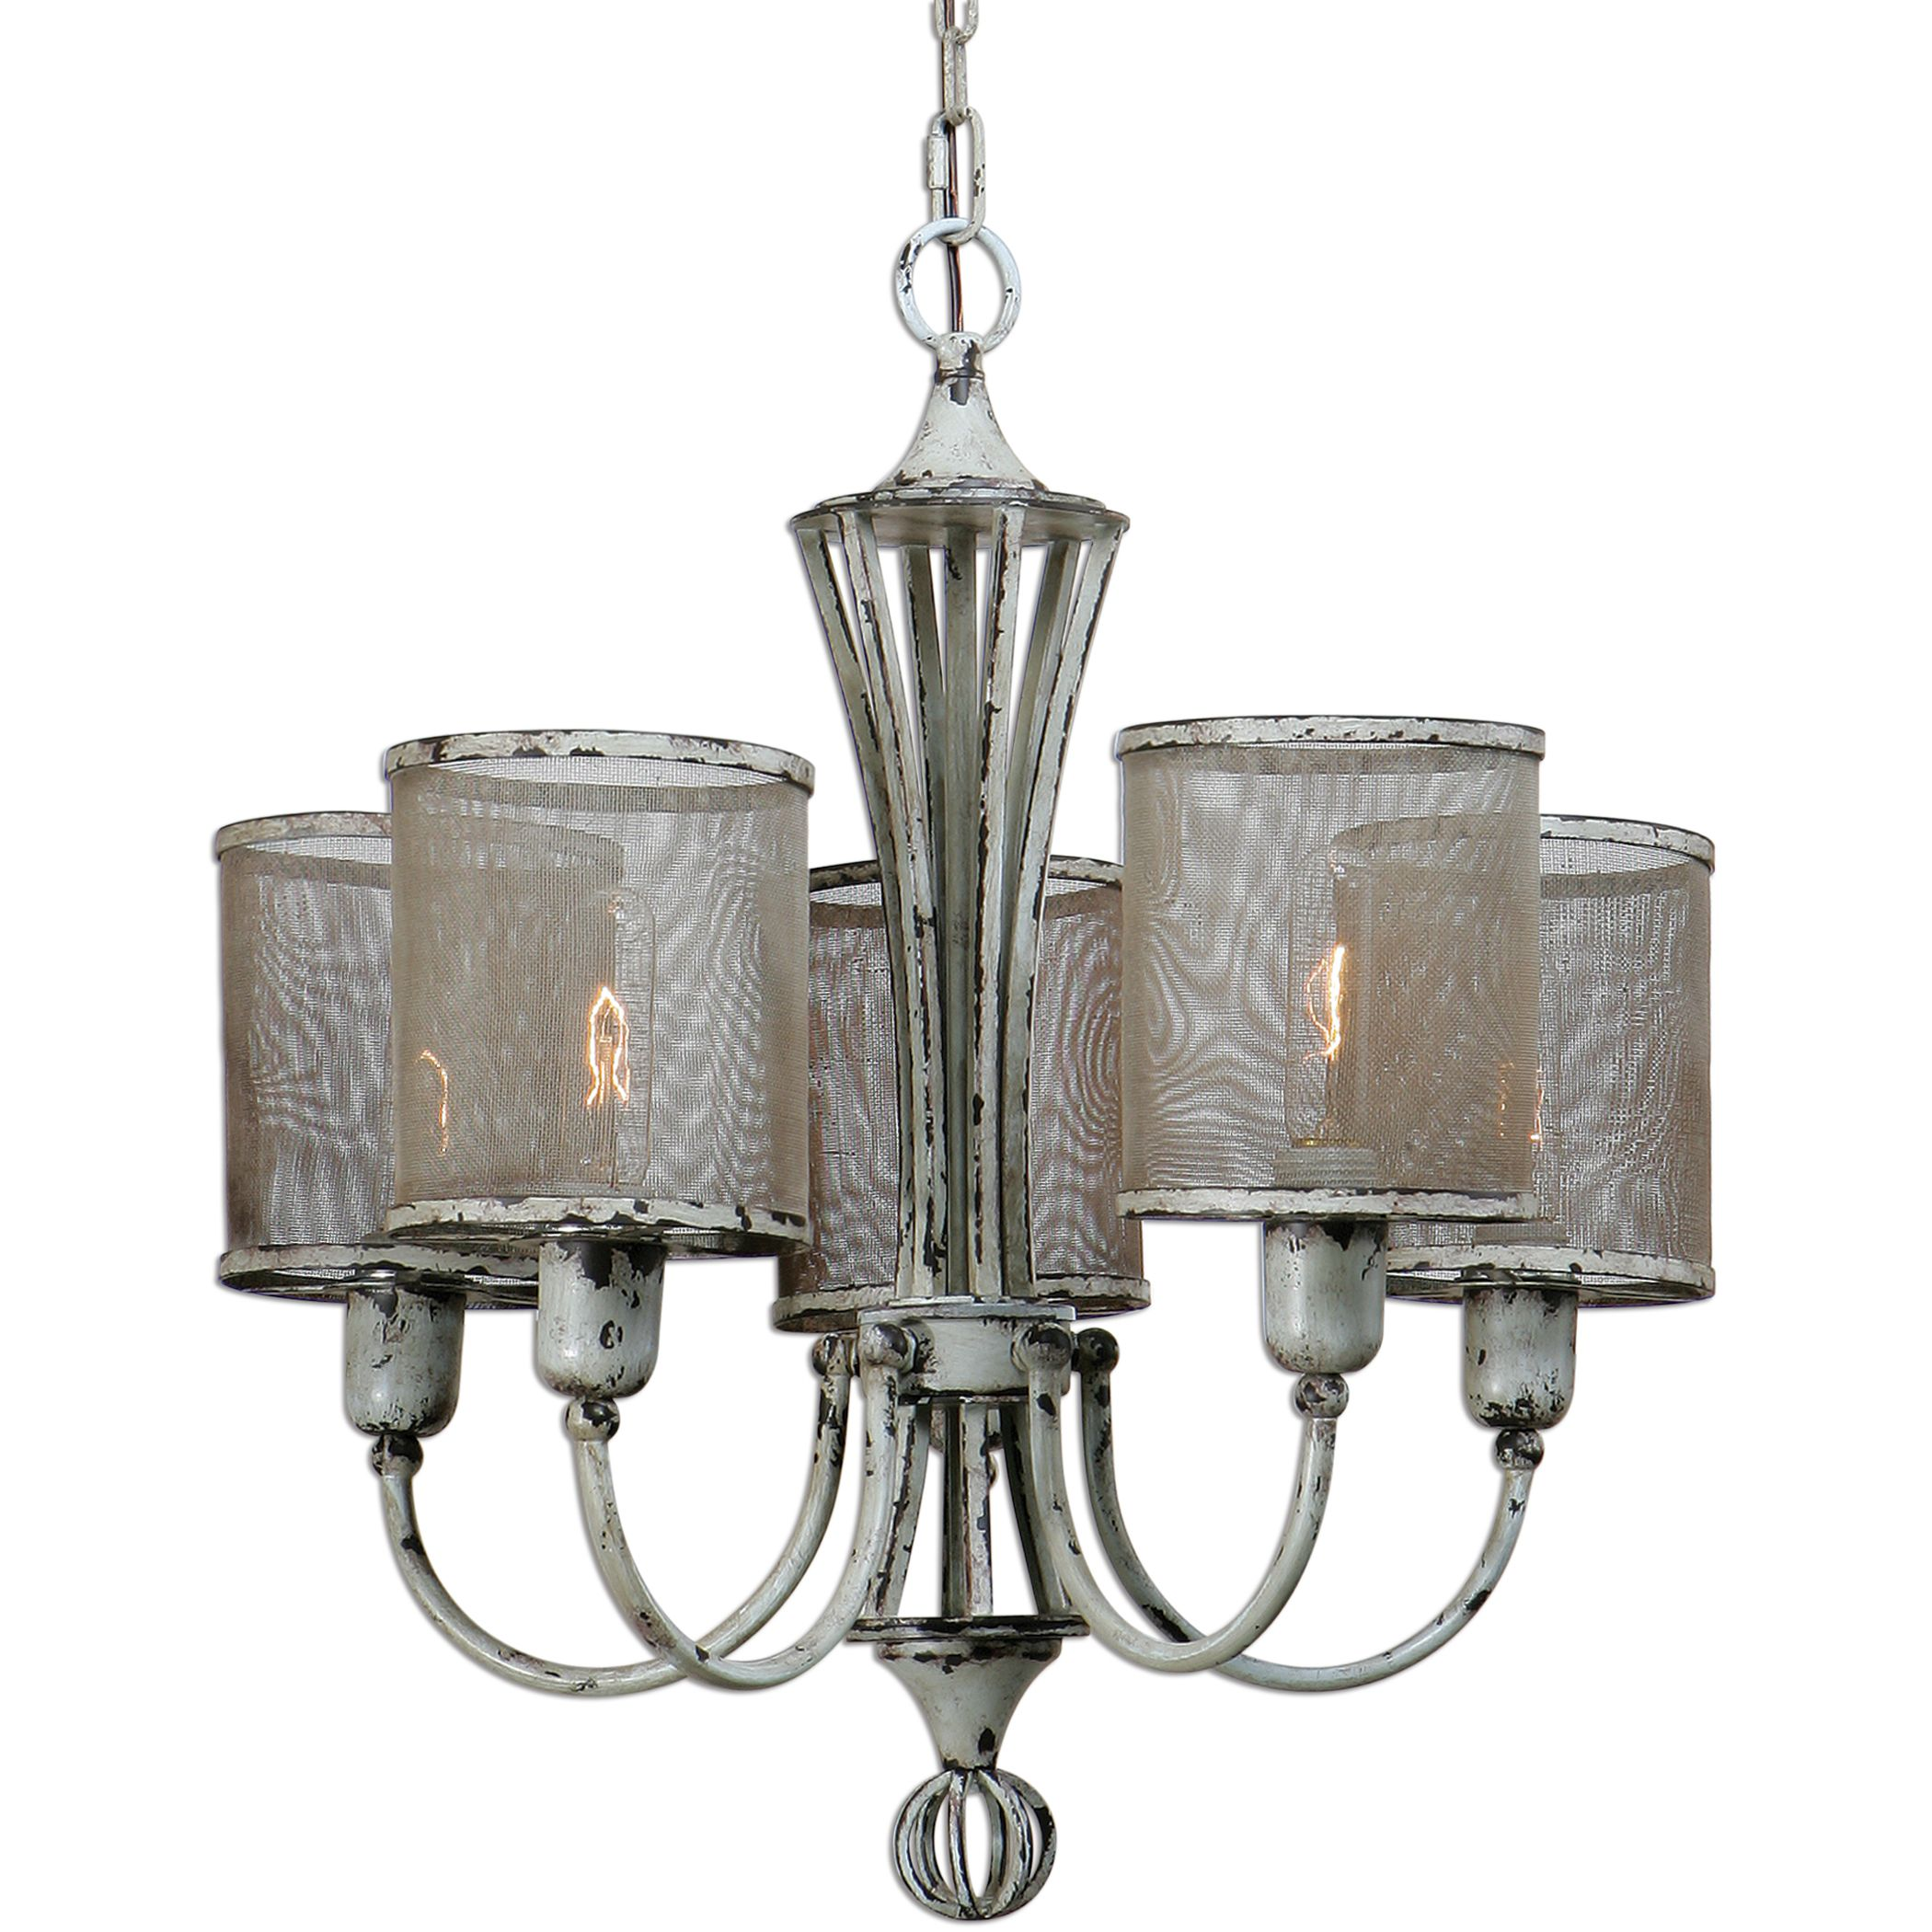 chandeliers sale vintage thirty by girlliftgear light pair club co victorian antique chandelier substantial london for of